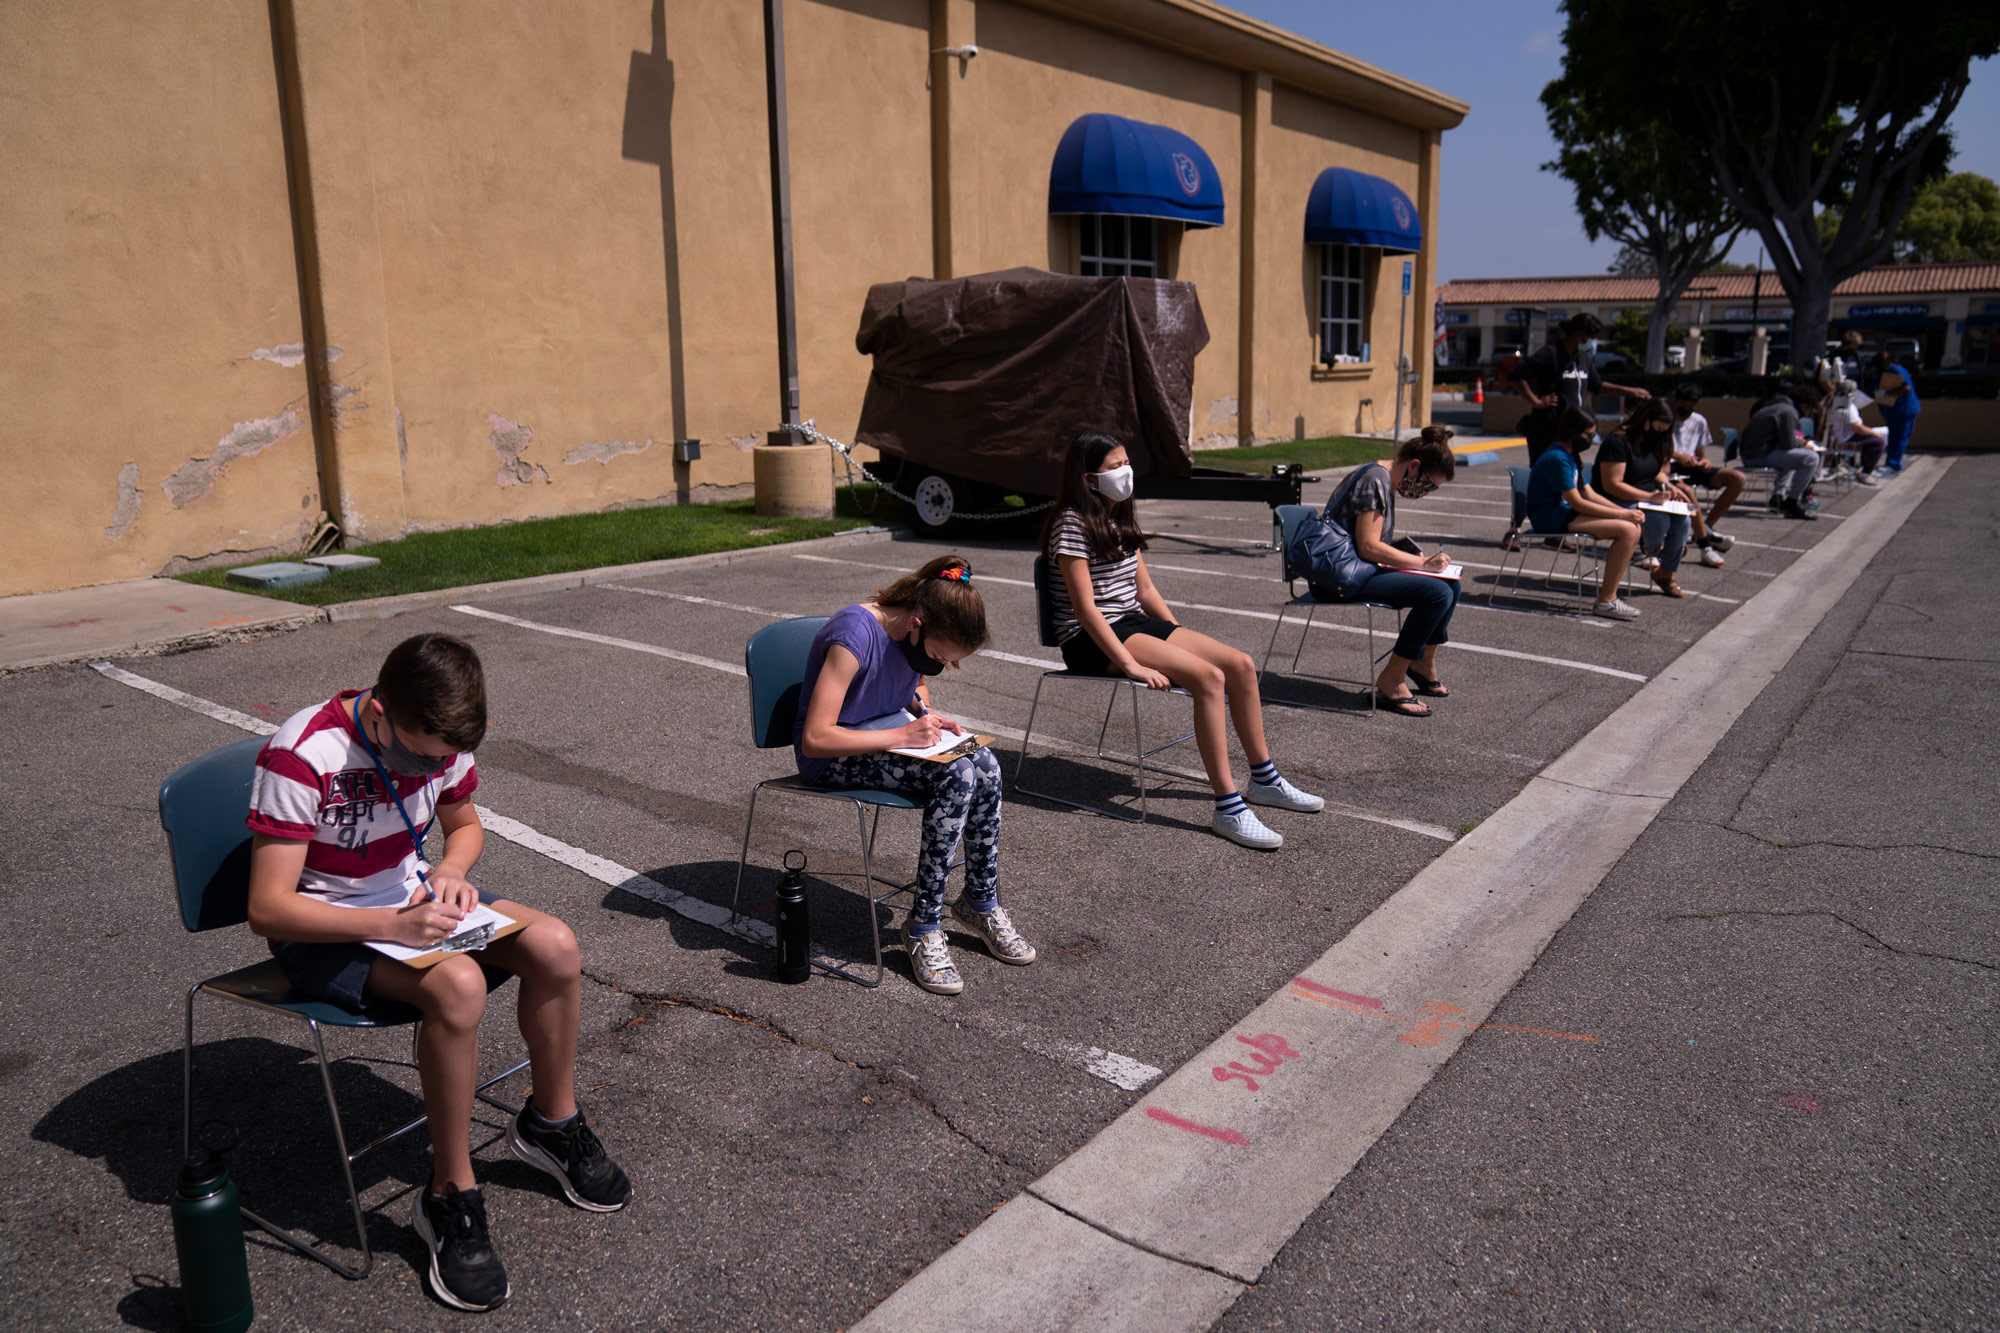 Children ages 12 to 15 wait to get their vitals checked before getting their Pfizer COVID-19 vaccine at Families Together of Orange County in Tustin, California, on May 13.